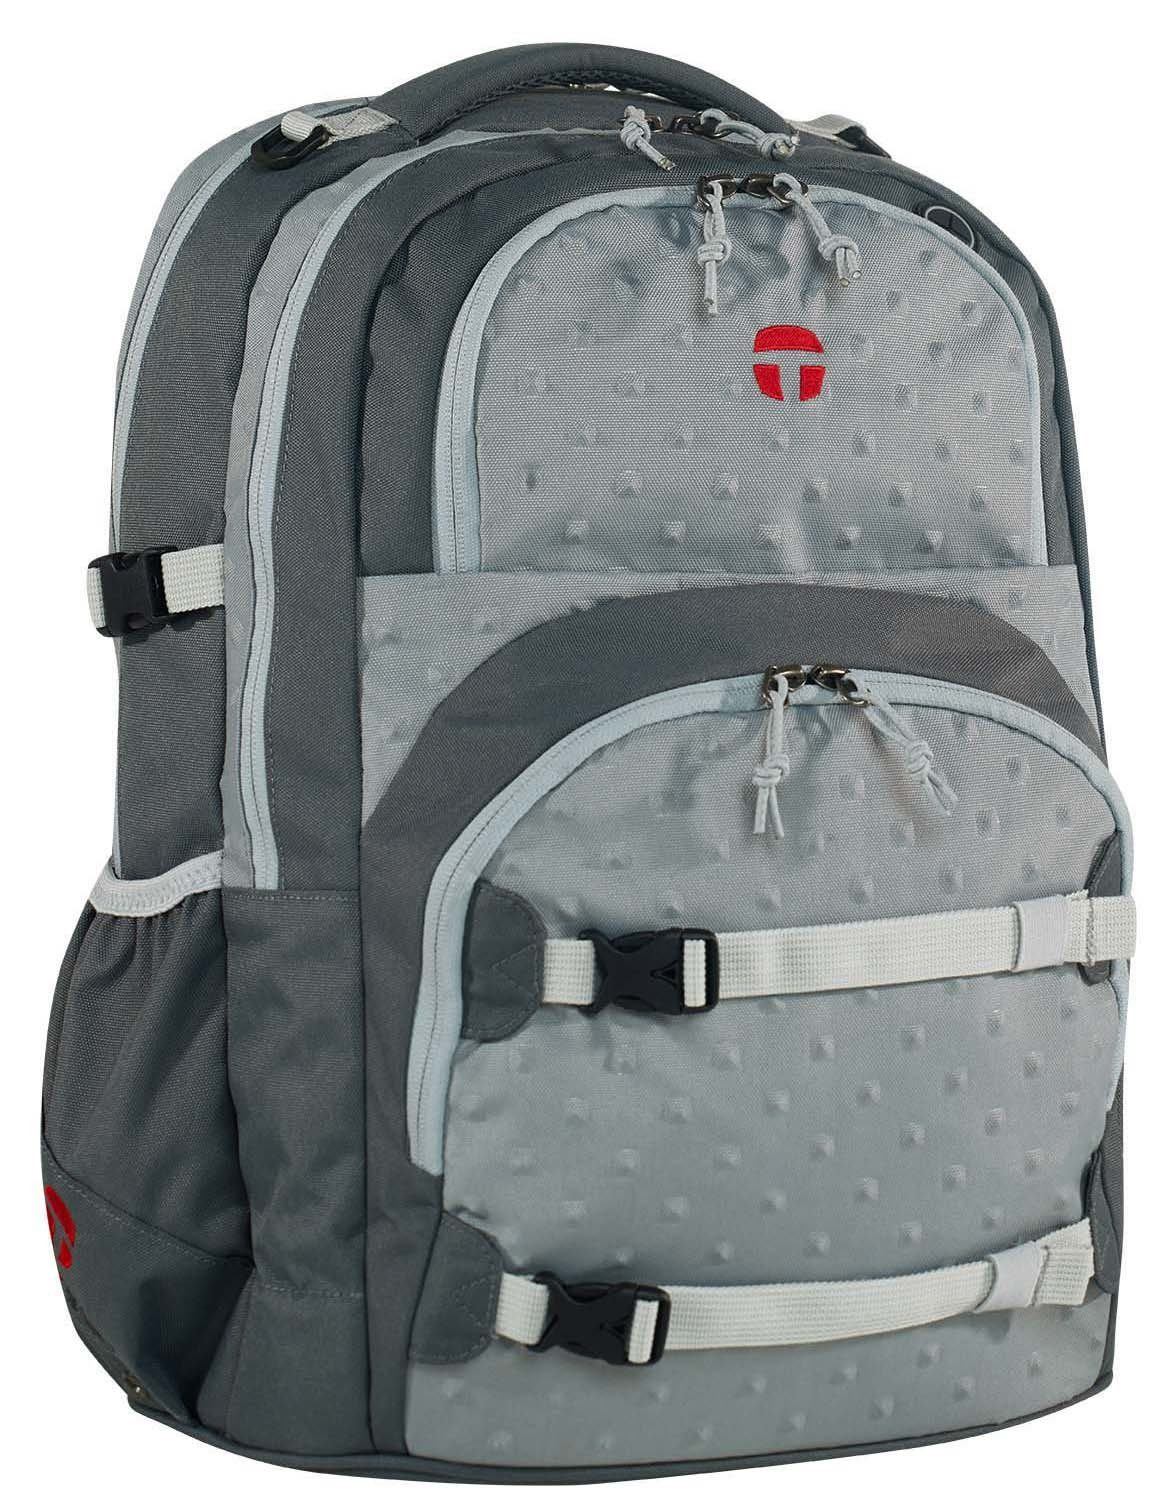 TAKE IT EASY® Schulrucksack, »Oslo Flex Zoom«